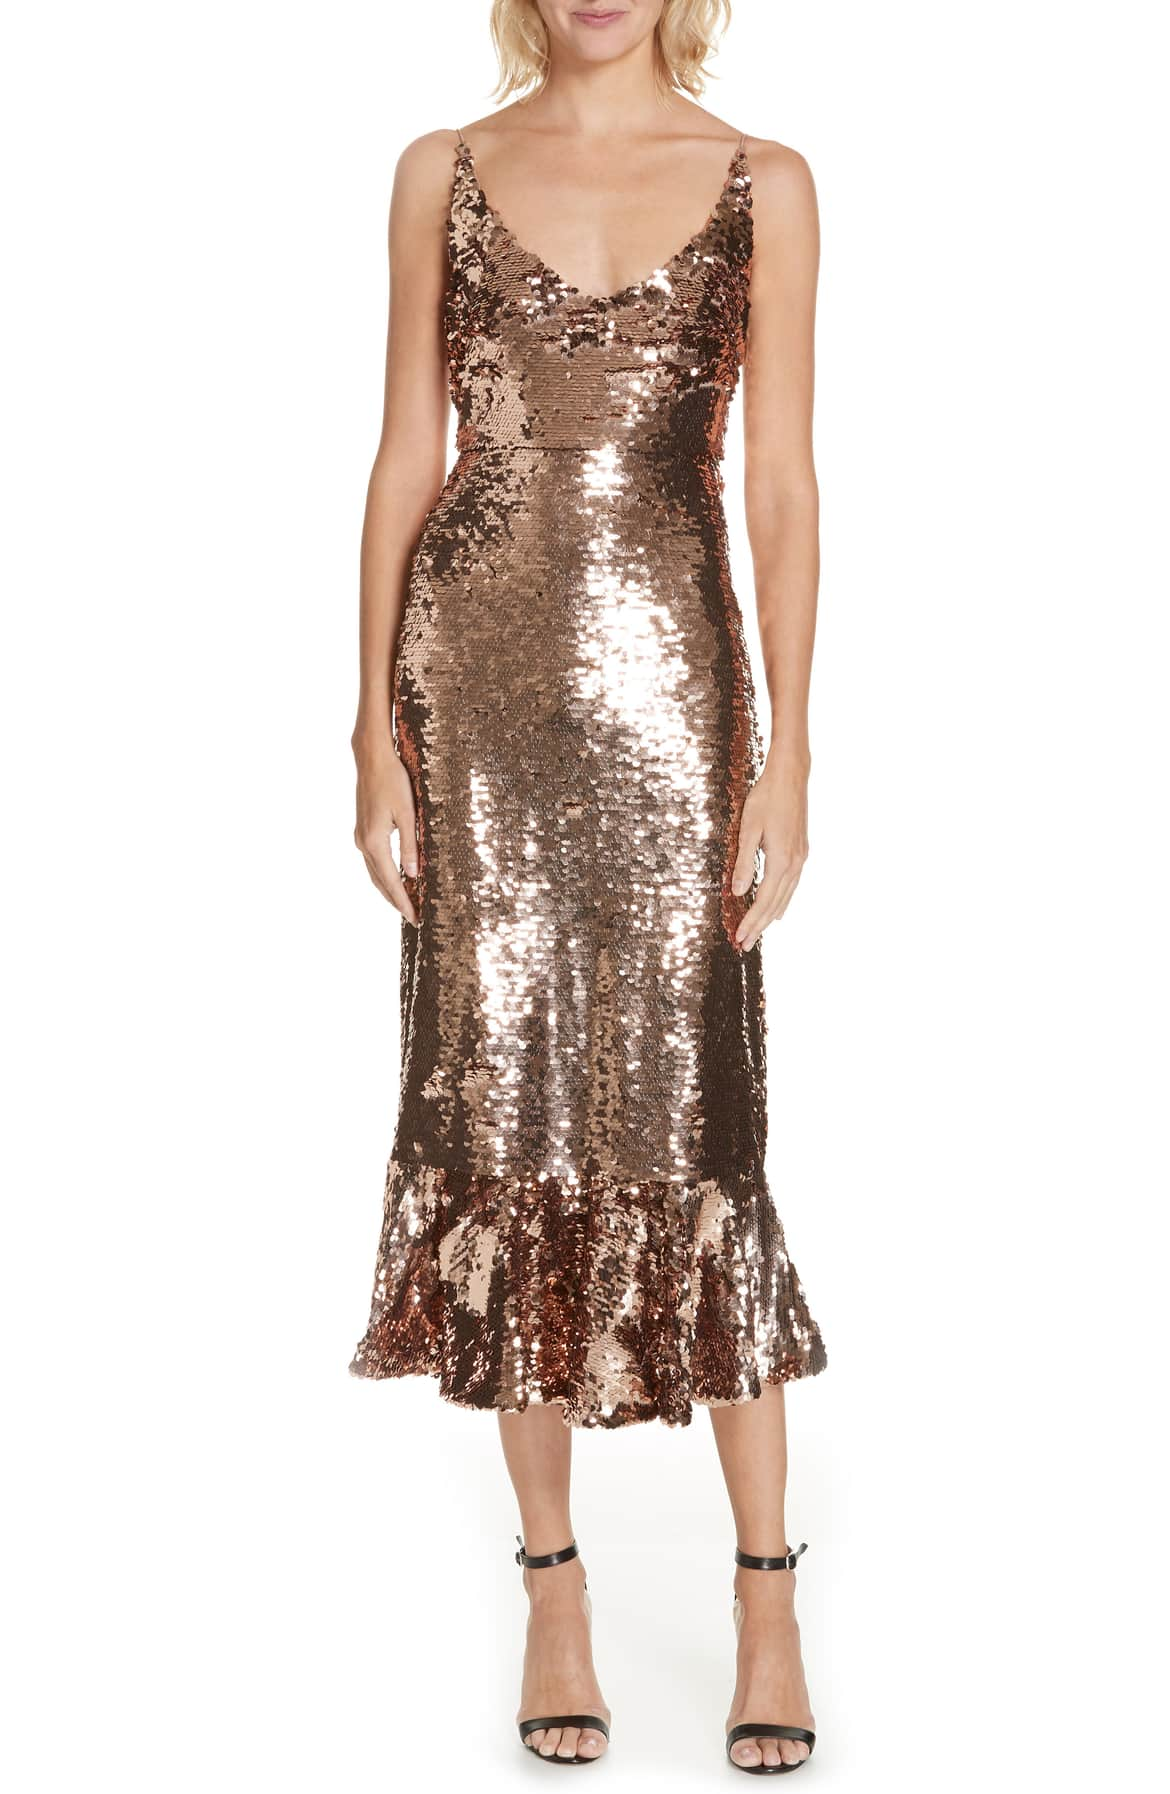 <p>Shimmering bronze sequins sweep across a curve-hugging midi that releases into a twirly ruffled hem for mesmerizing movement all night long. $795. (Image: Nordstrom){&amp;nbsp;}</p><p></p>